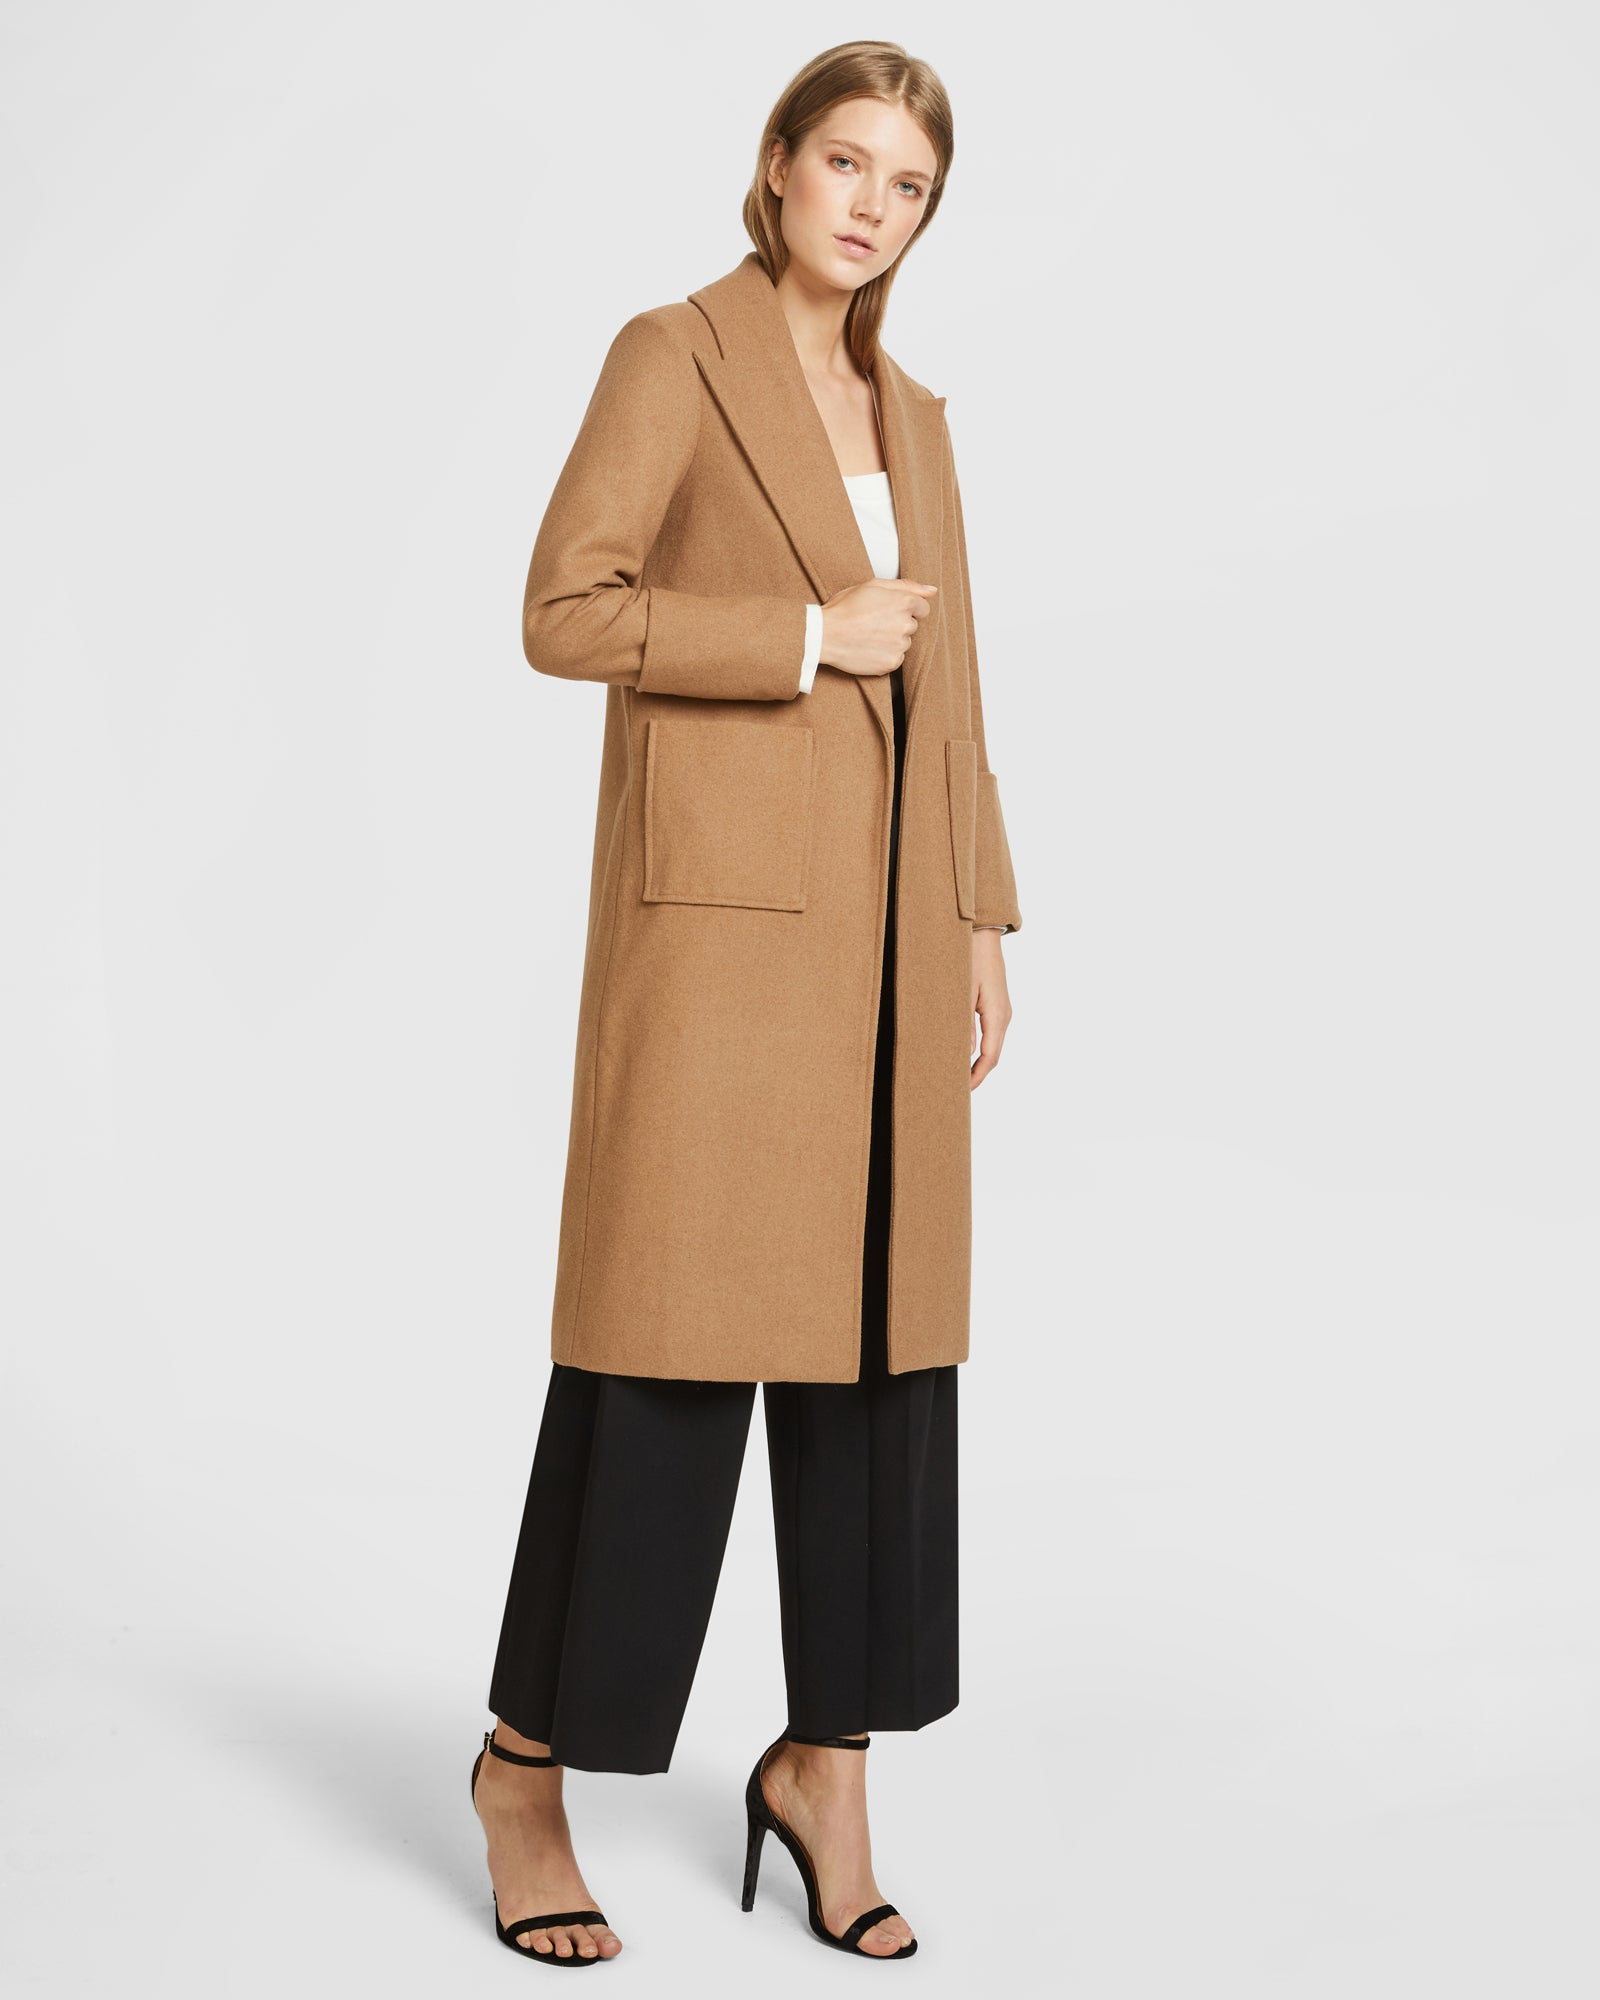 Wool Peak Lapel Coat - Camel